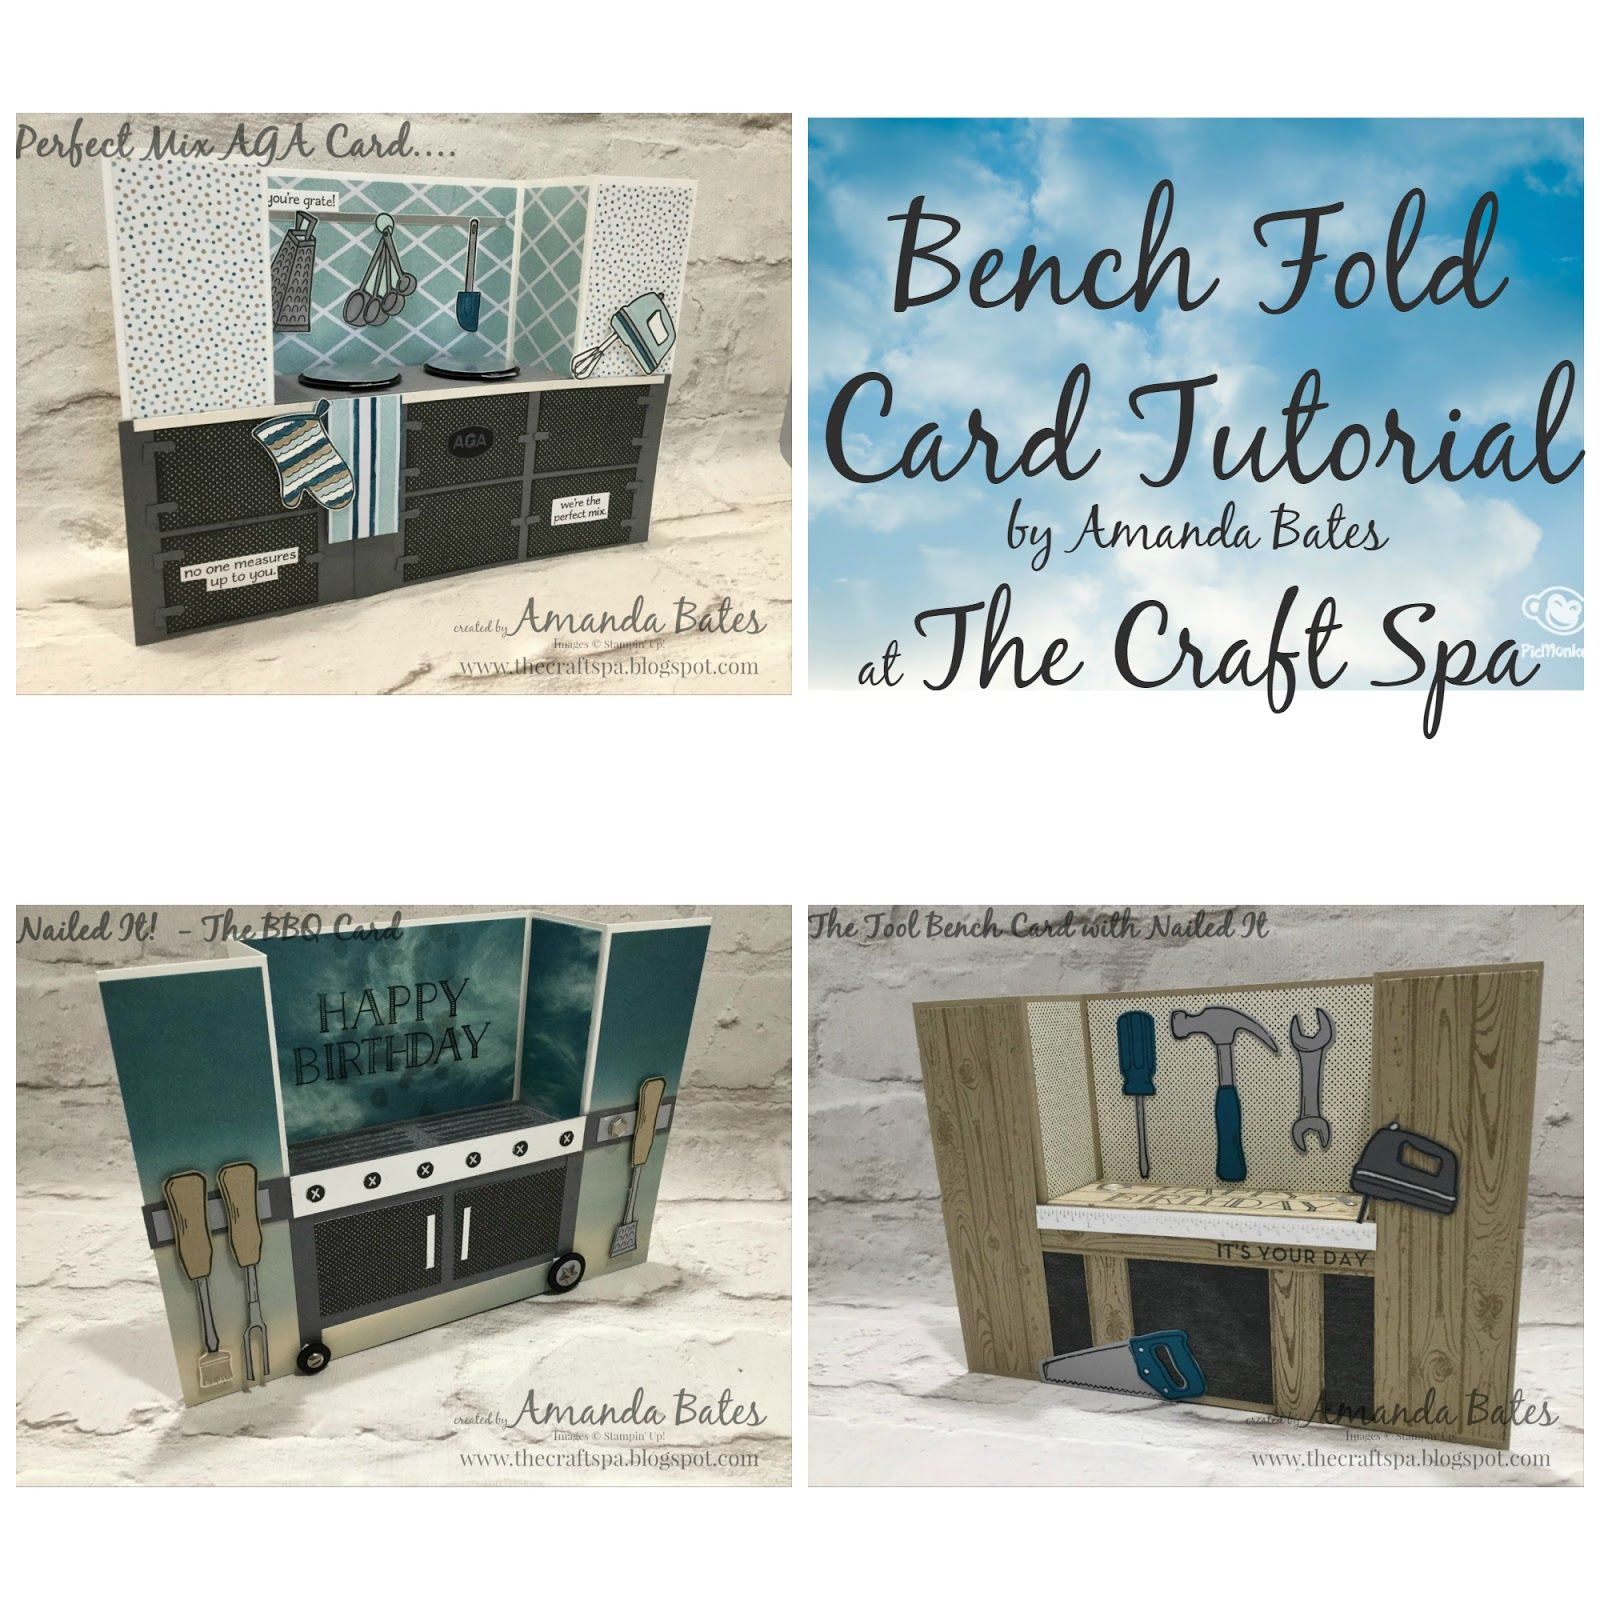 A Uk Blog Featuring Stampin Up Products Sharing Of Cards Boxes Bags Scrapbooking Projects With Tutorials And Tip Card Tutorial Joy Fold Card Bench Card